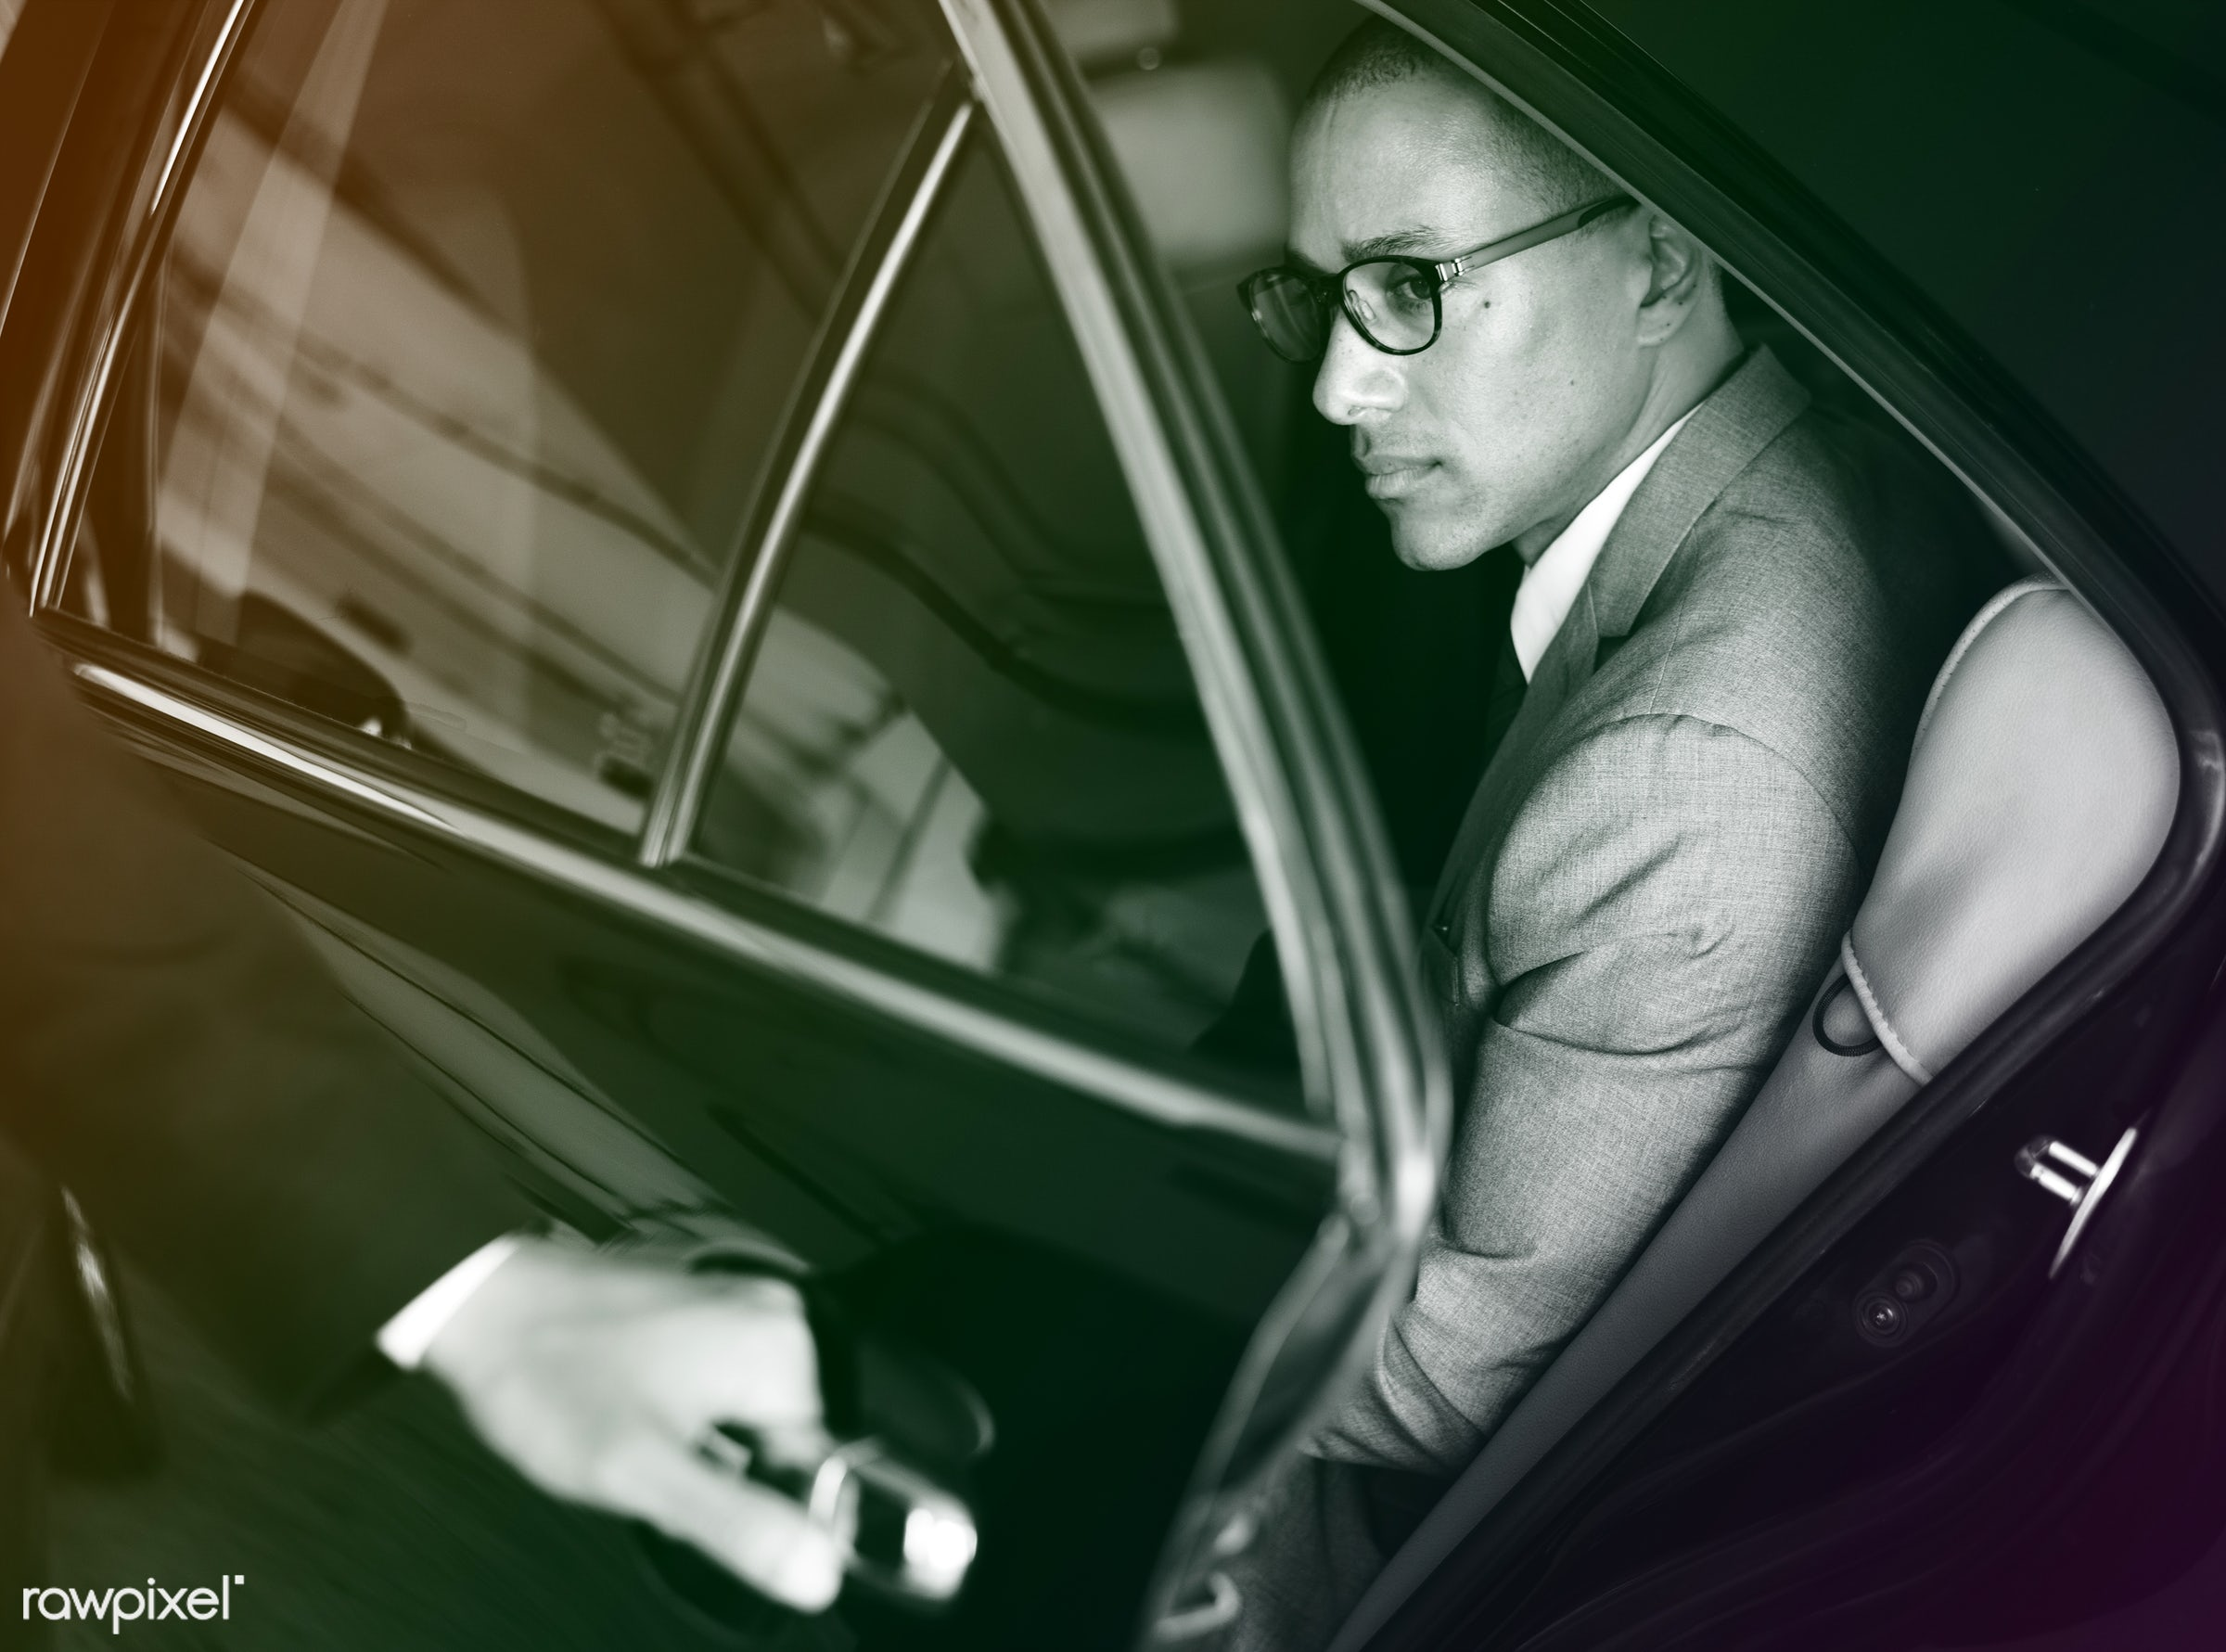 car, person, white collar worker, tie, vehicle, door, travel, transportation, business, open, businessman, style, transport...